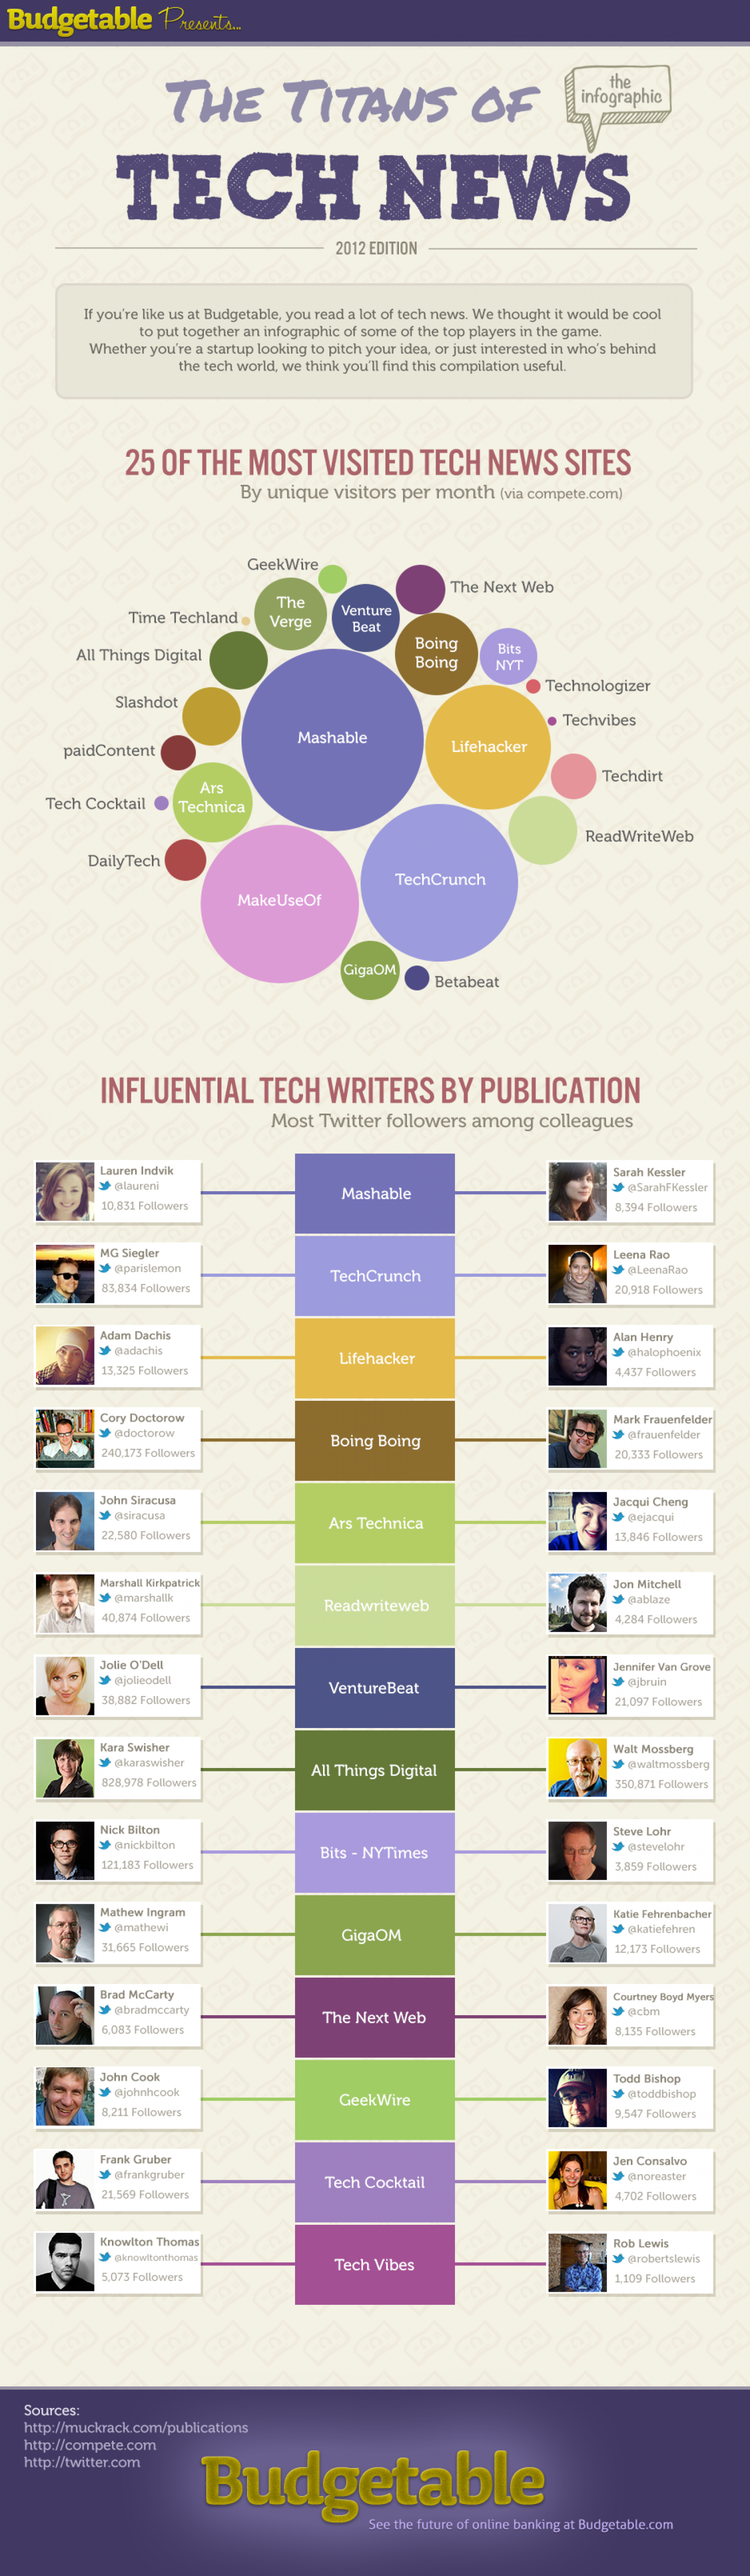 The Titans of Tech News Infographic